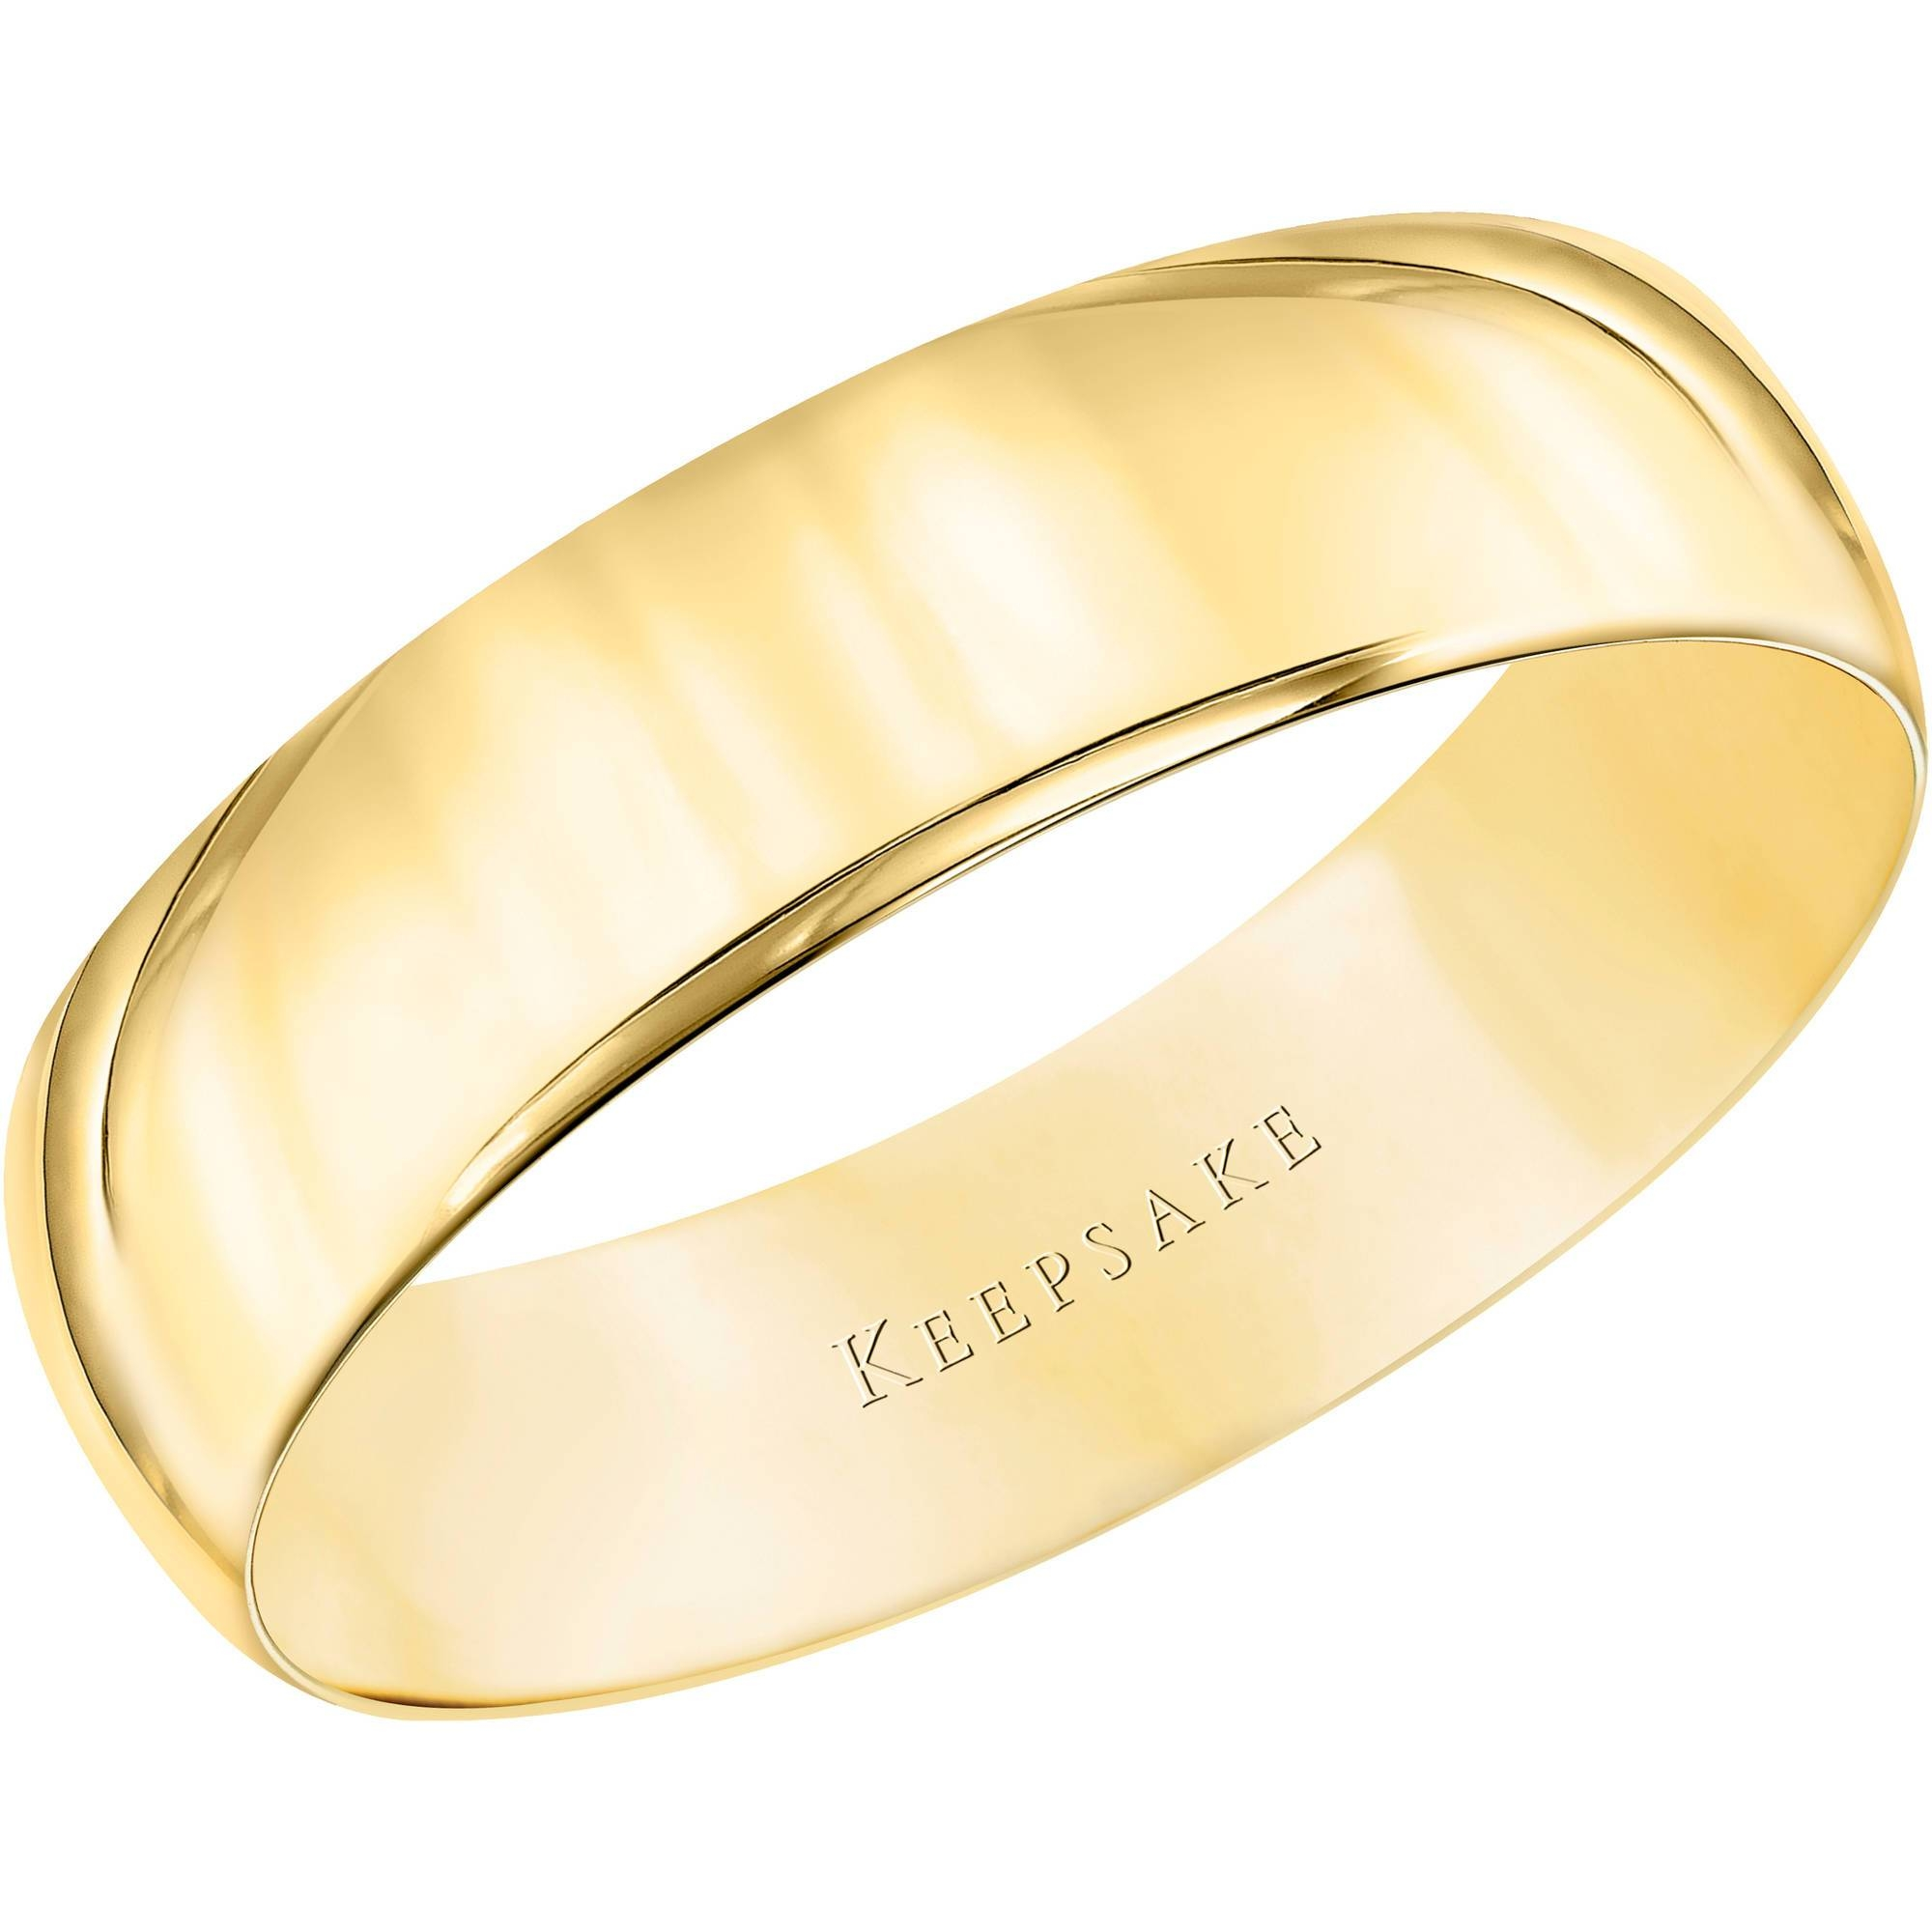 Keepsake 10Kt Yellow Gold Wedding Band With High Polish Finish With White Gold Wedding Bands Rings (Gallery 9 of 15)